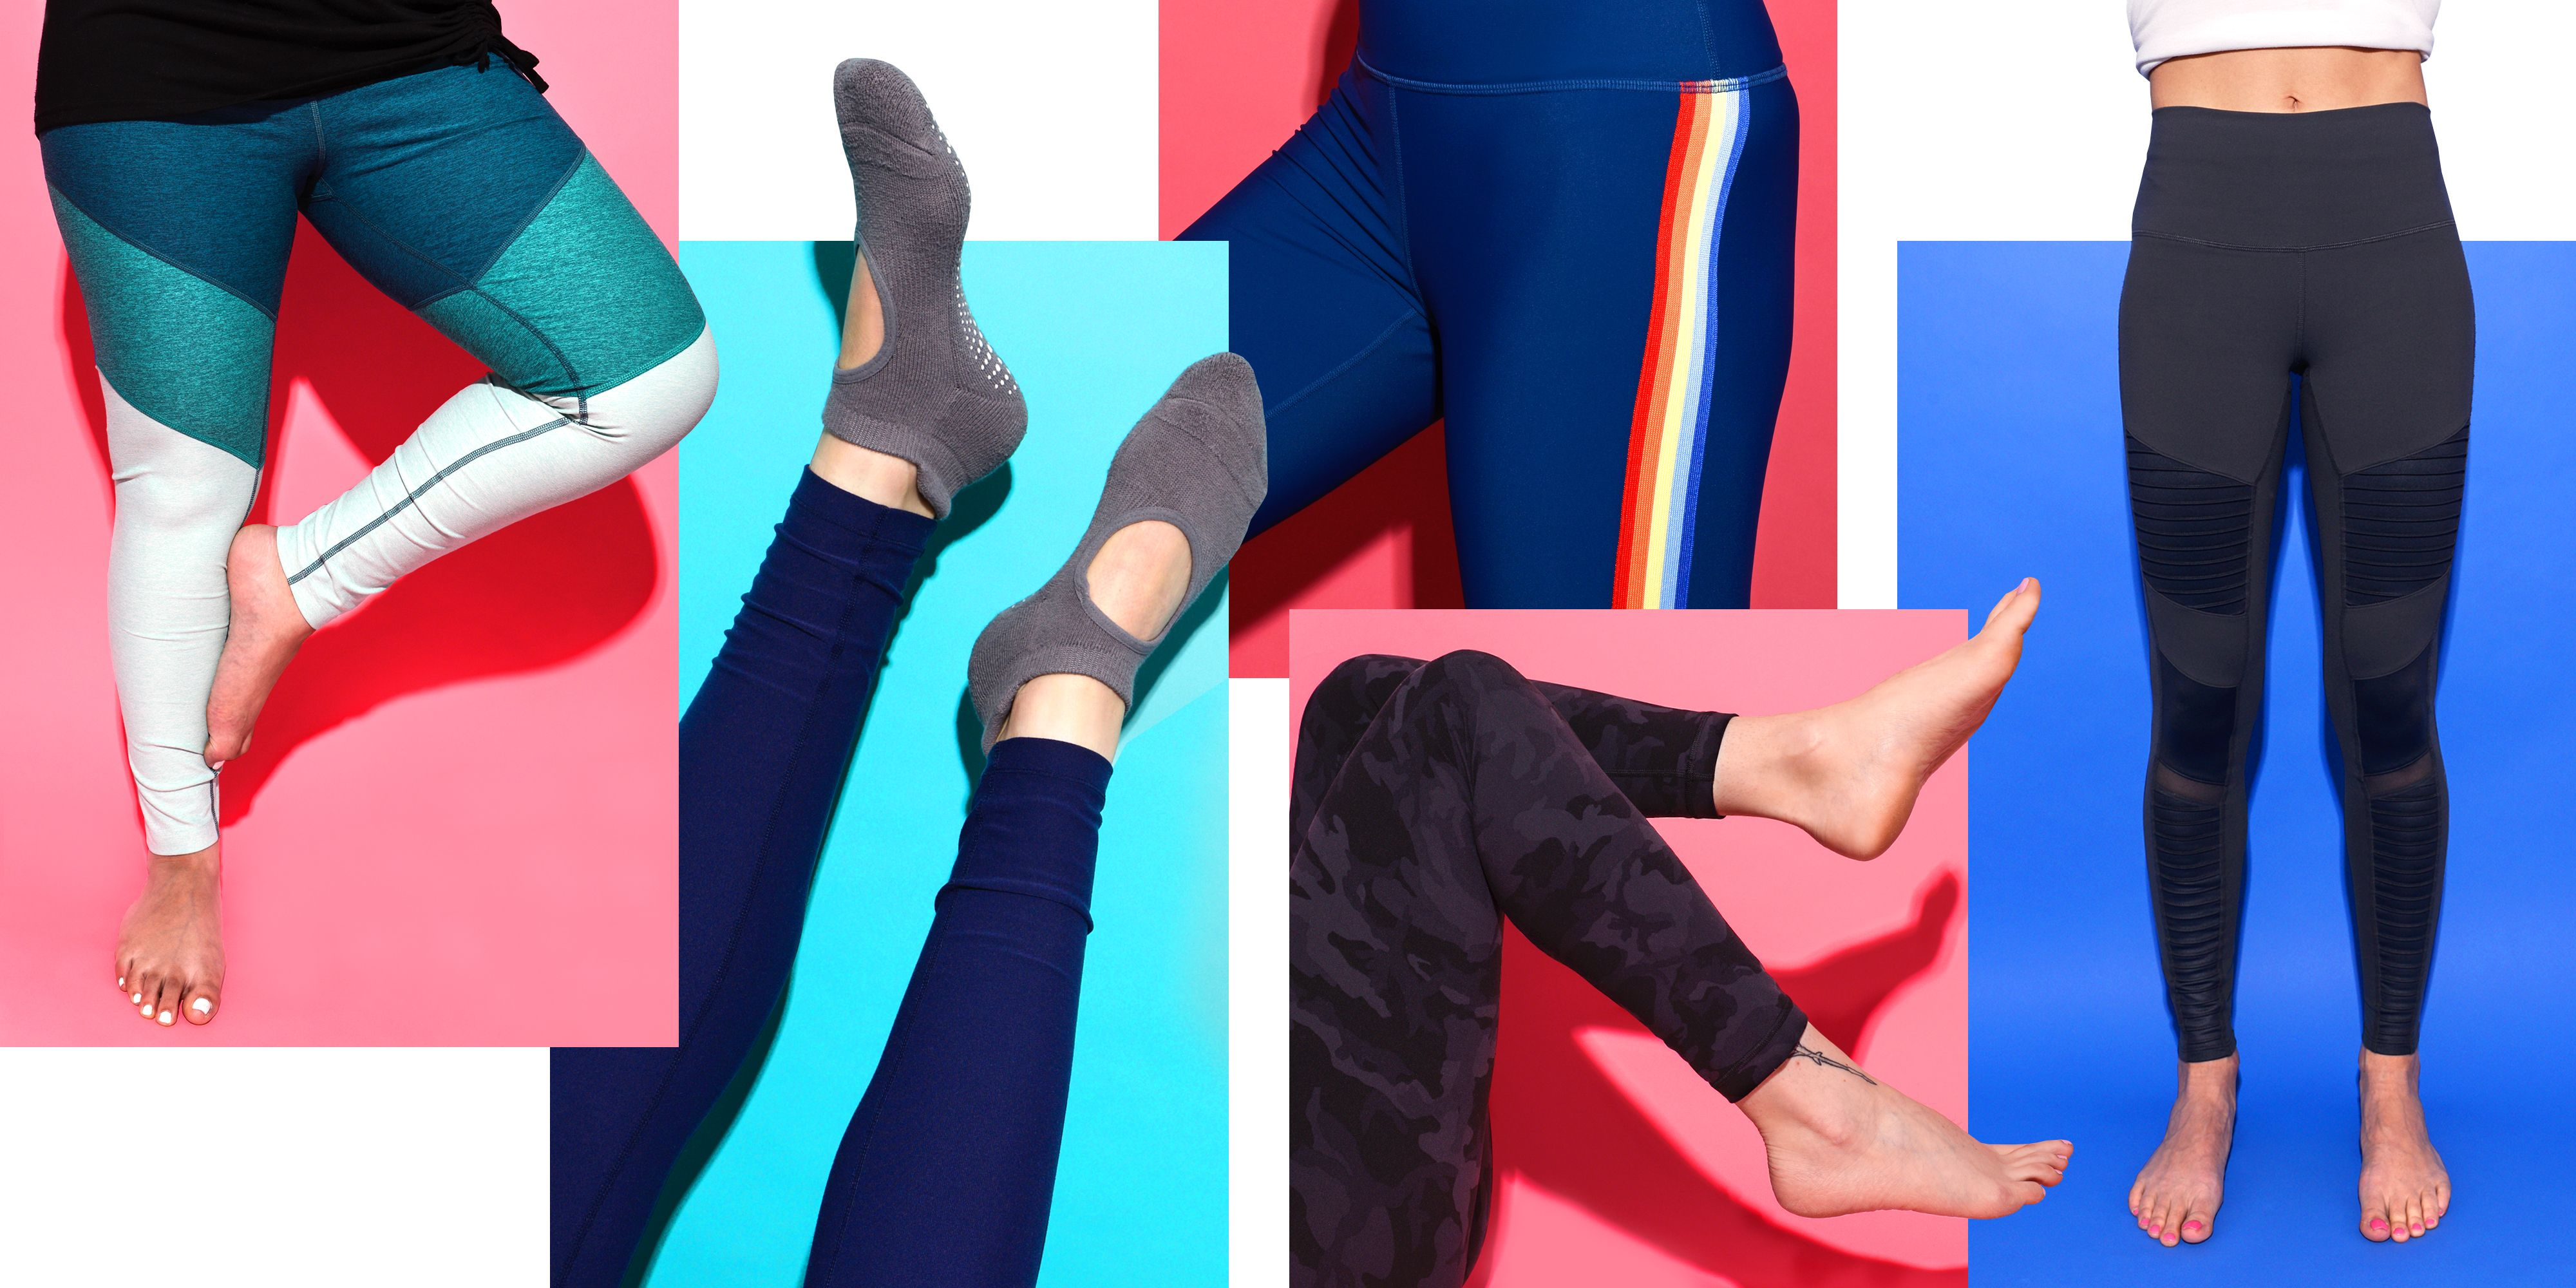 f2c5e405f5 15 Editors Tested 26 Styles of Women's Yoga Pants — Here Are the Best of  the Best